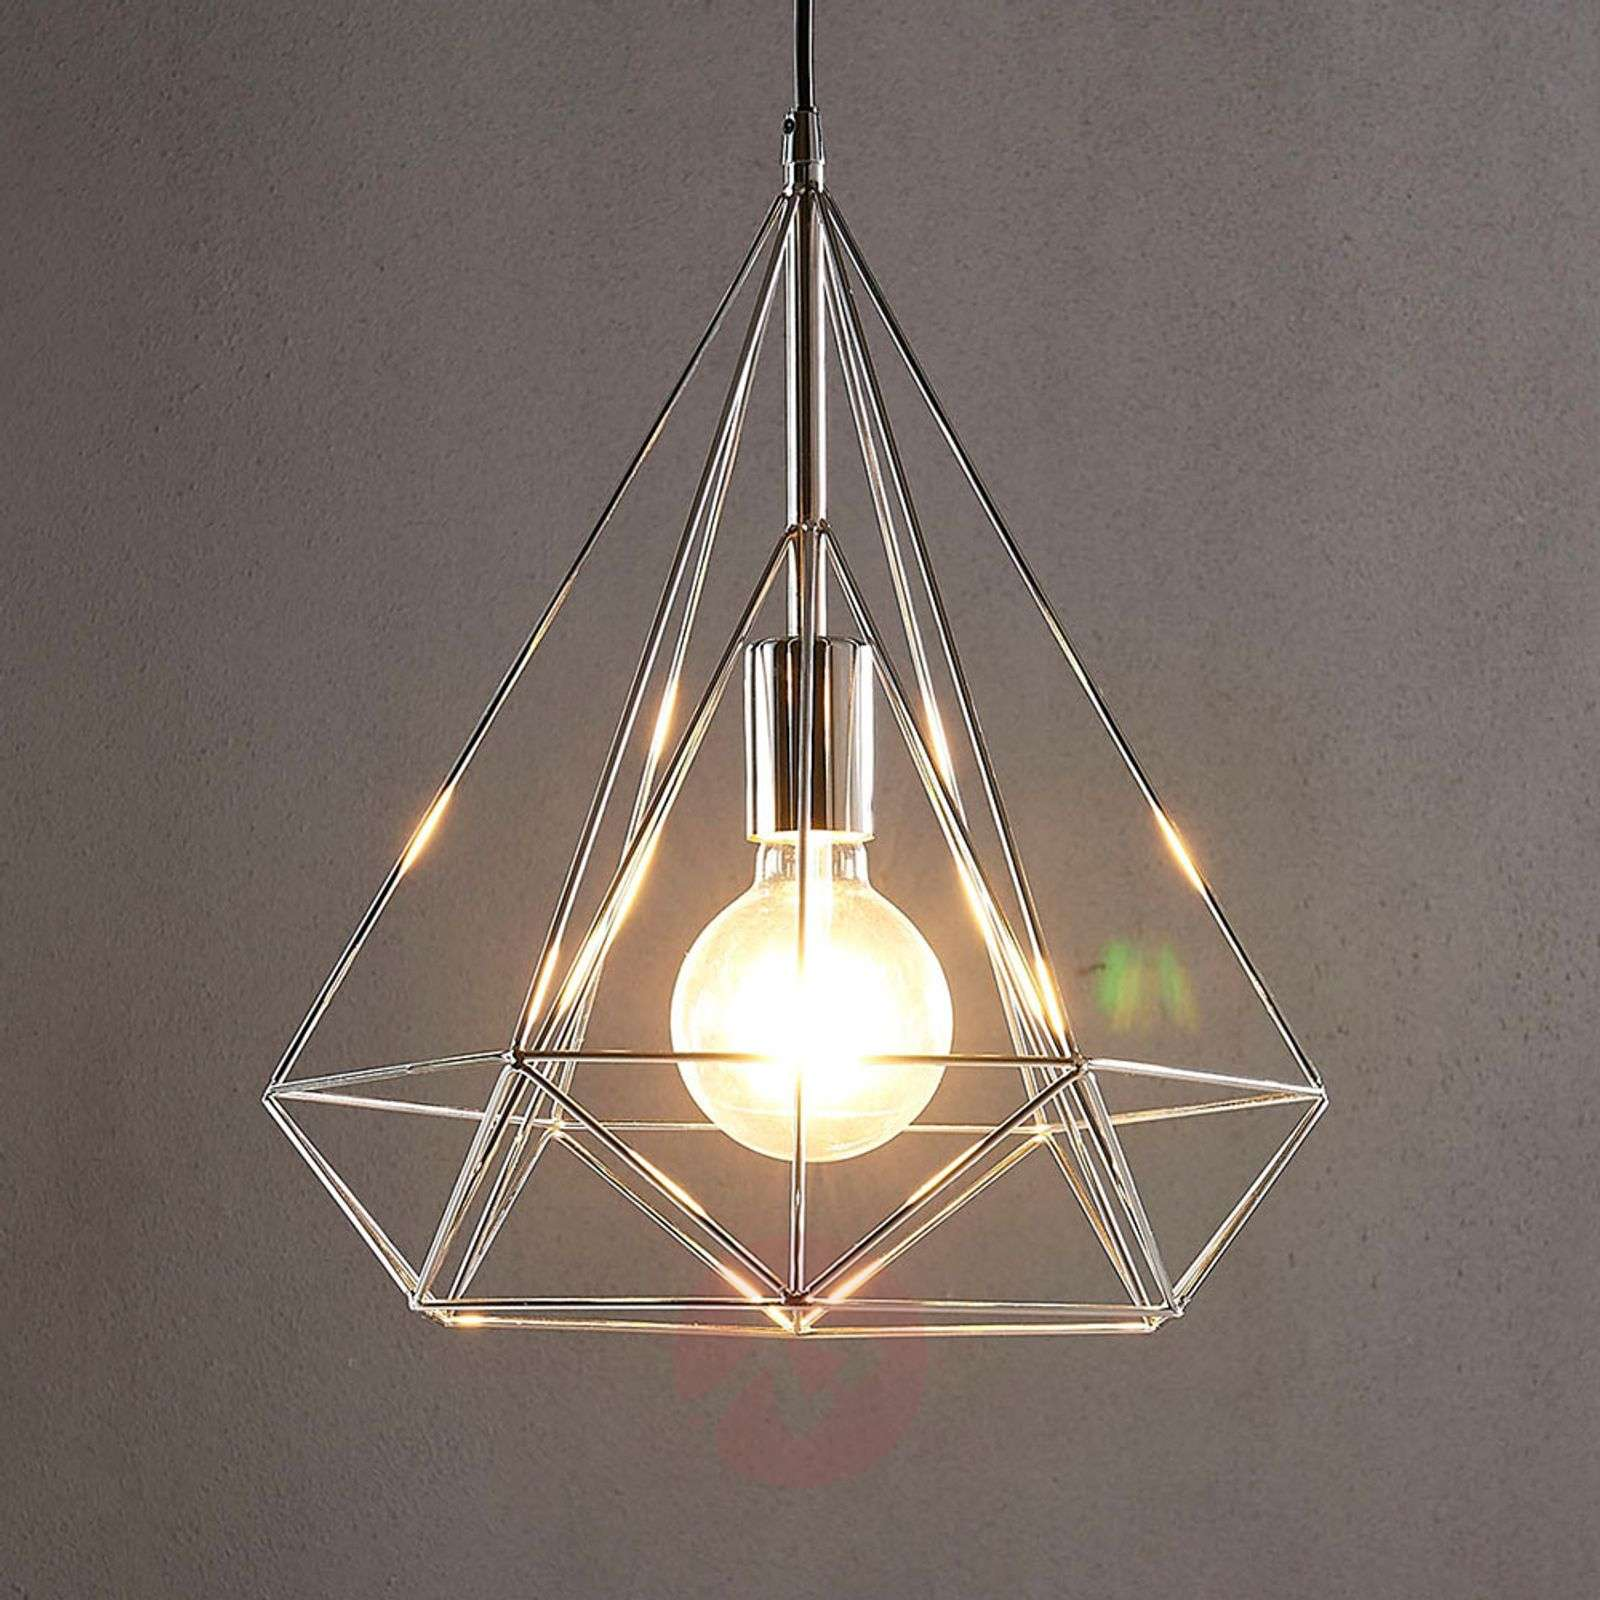 Chrome-plated pendant light Nael in cage shape-9621225-02